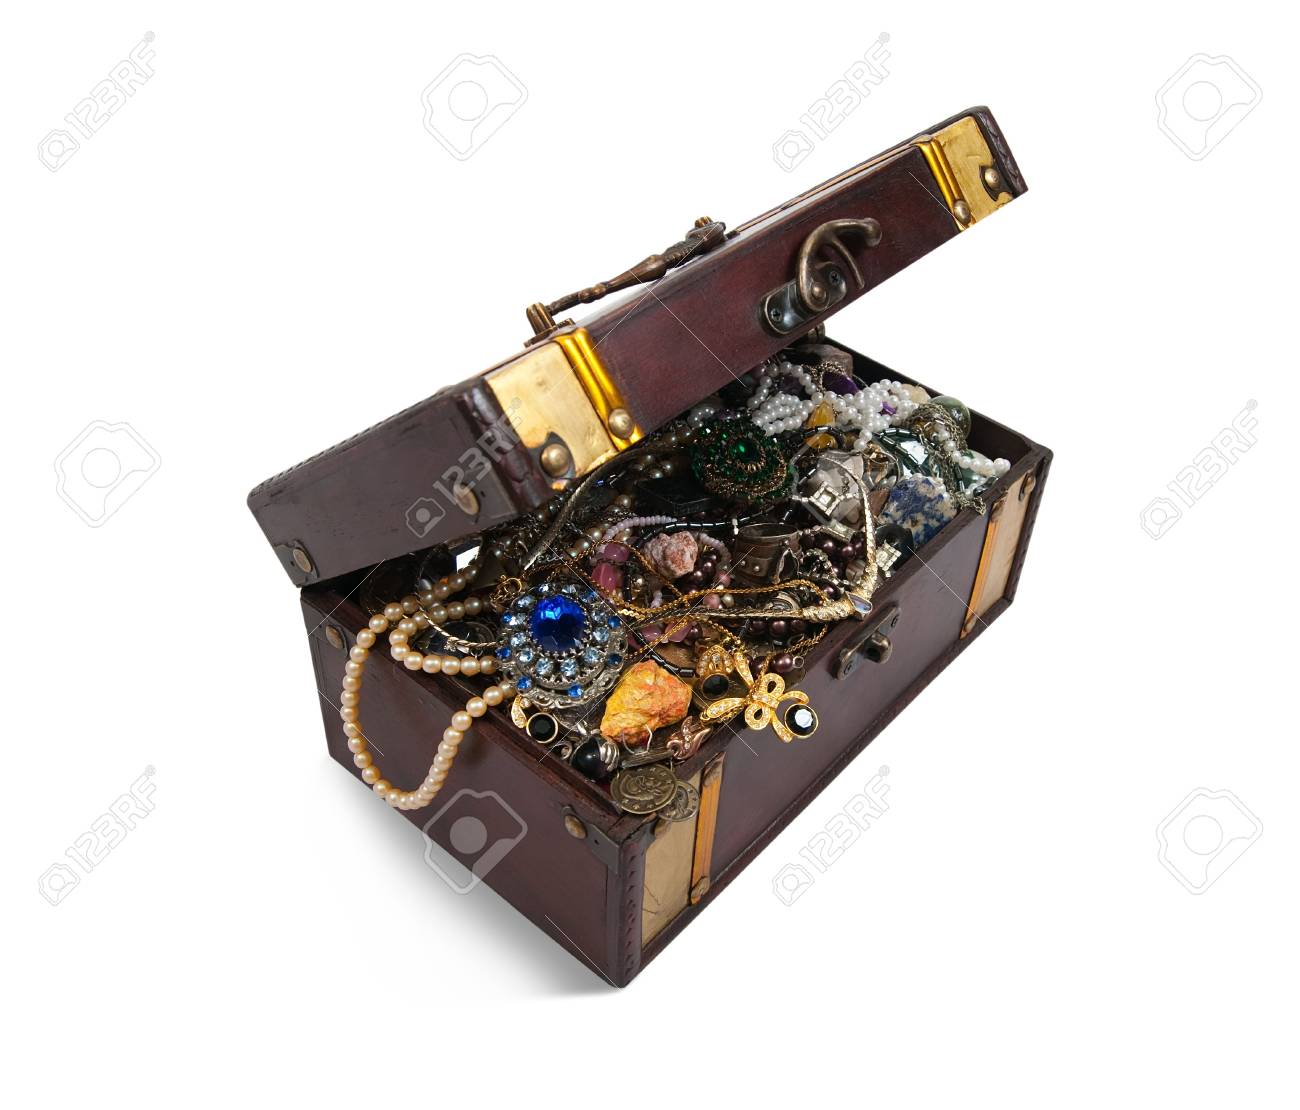 wooden treasure chest with valuables, isolated over white background Stock Photo - 6319026